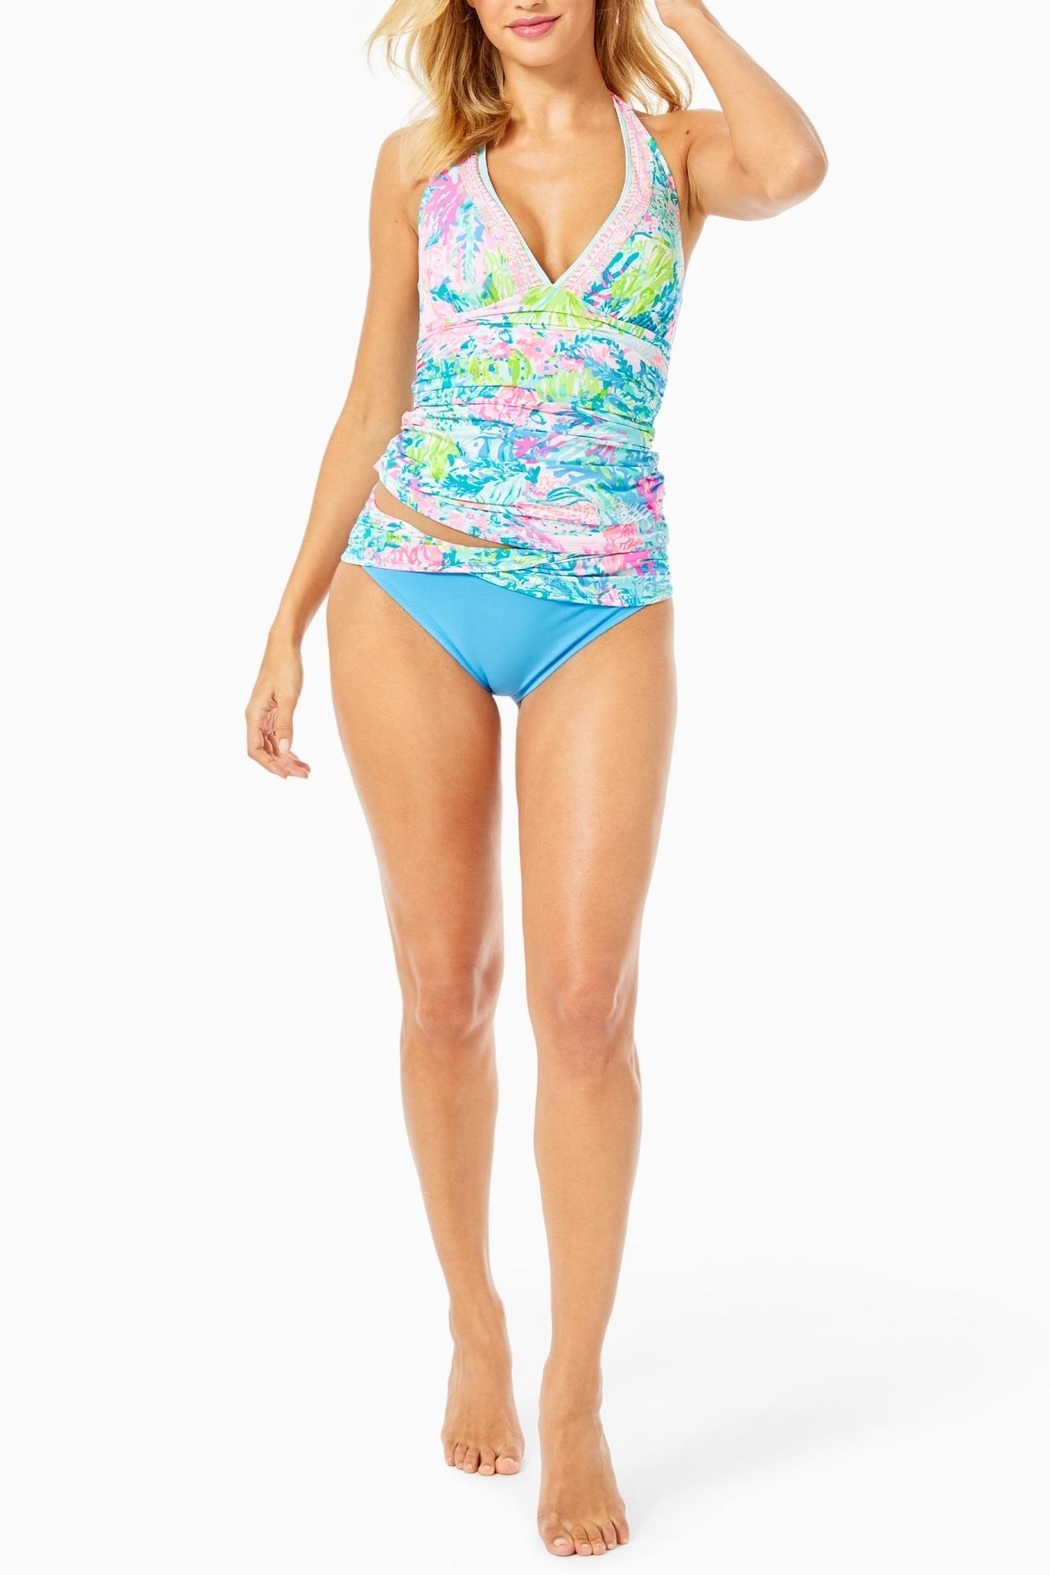 Lilly Pulitzer Lagoon Sarong-Hipster Bikini-Bottom - Side Cropped Image